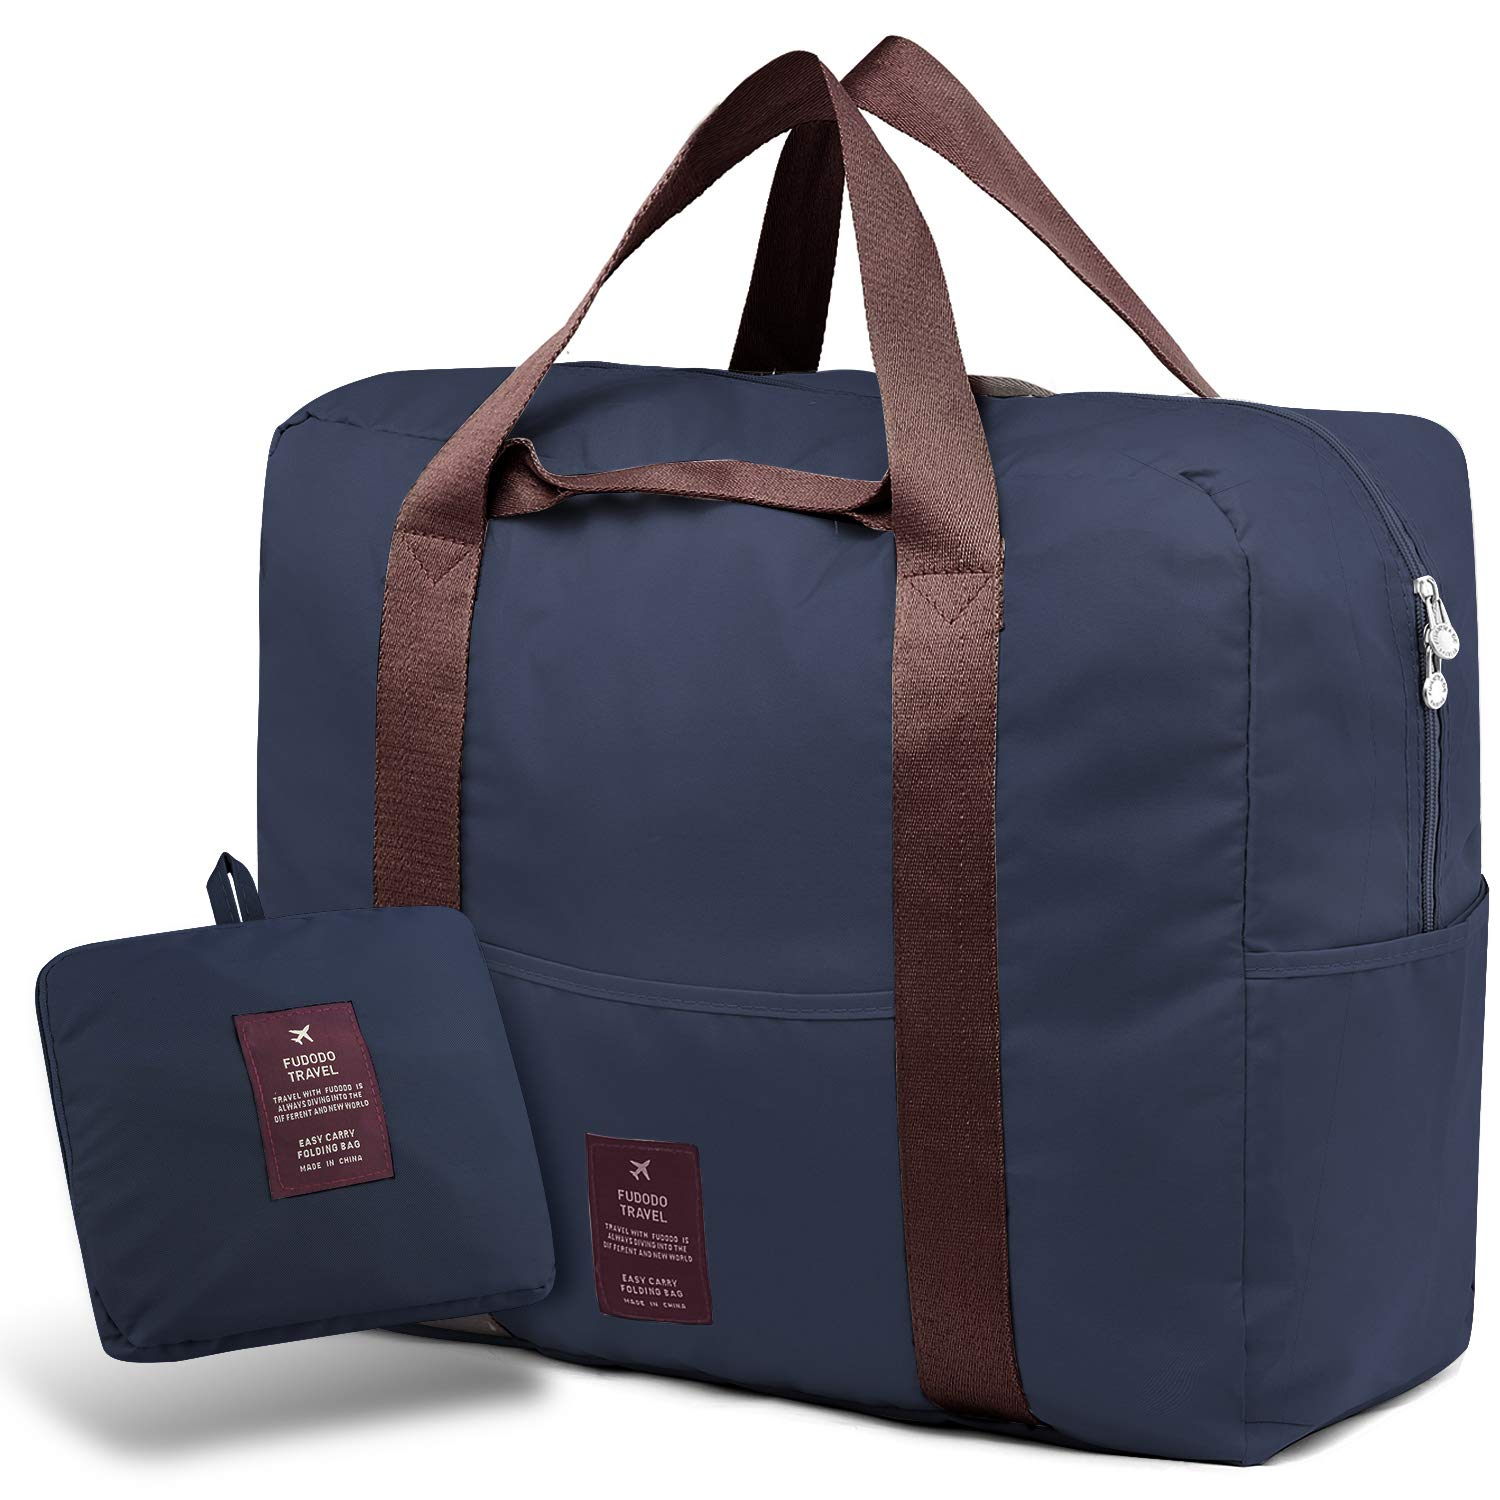 631806c45c SPAHER Travel Duffle Bag Foldable Packable Lightweight Holdall Waterproof  Handbag Shoulder Sling Clothes Packing Organiser Storage Carrying Suitcase  for ...